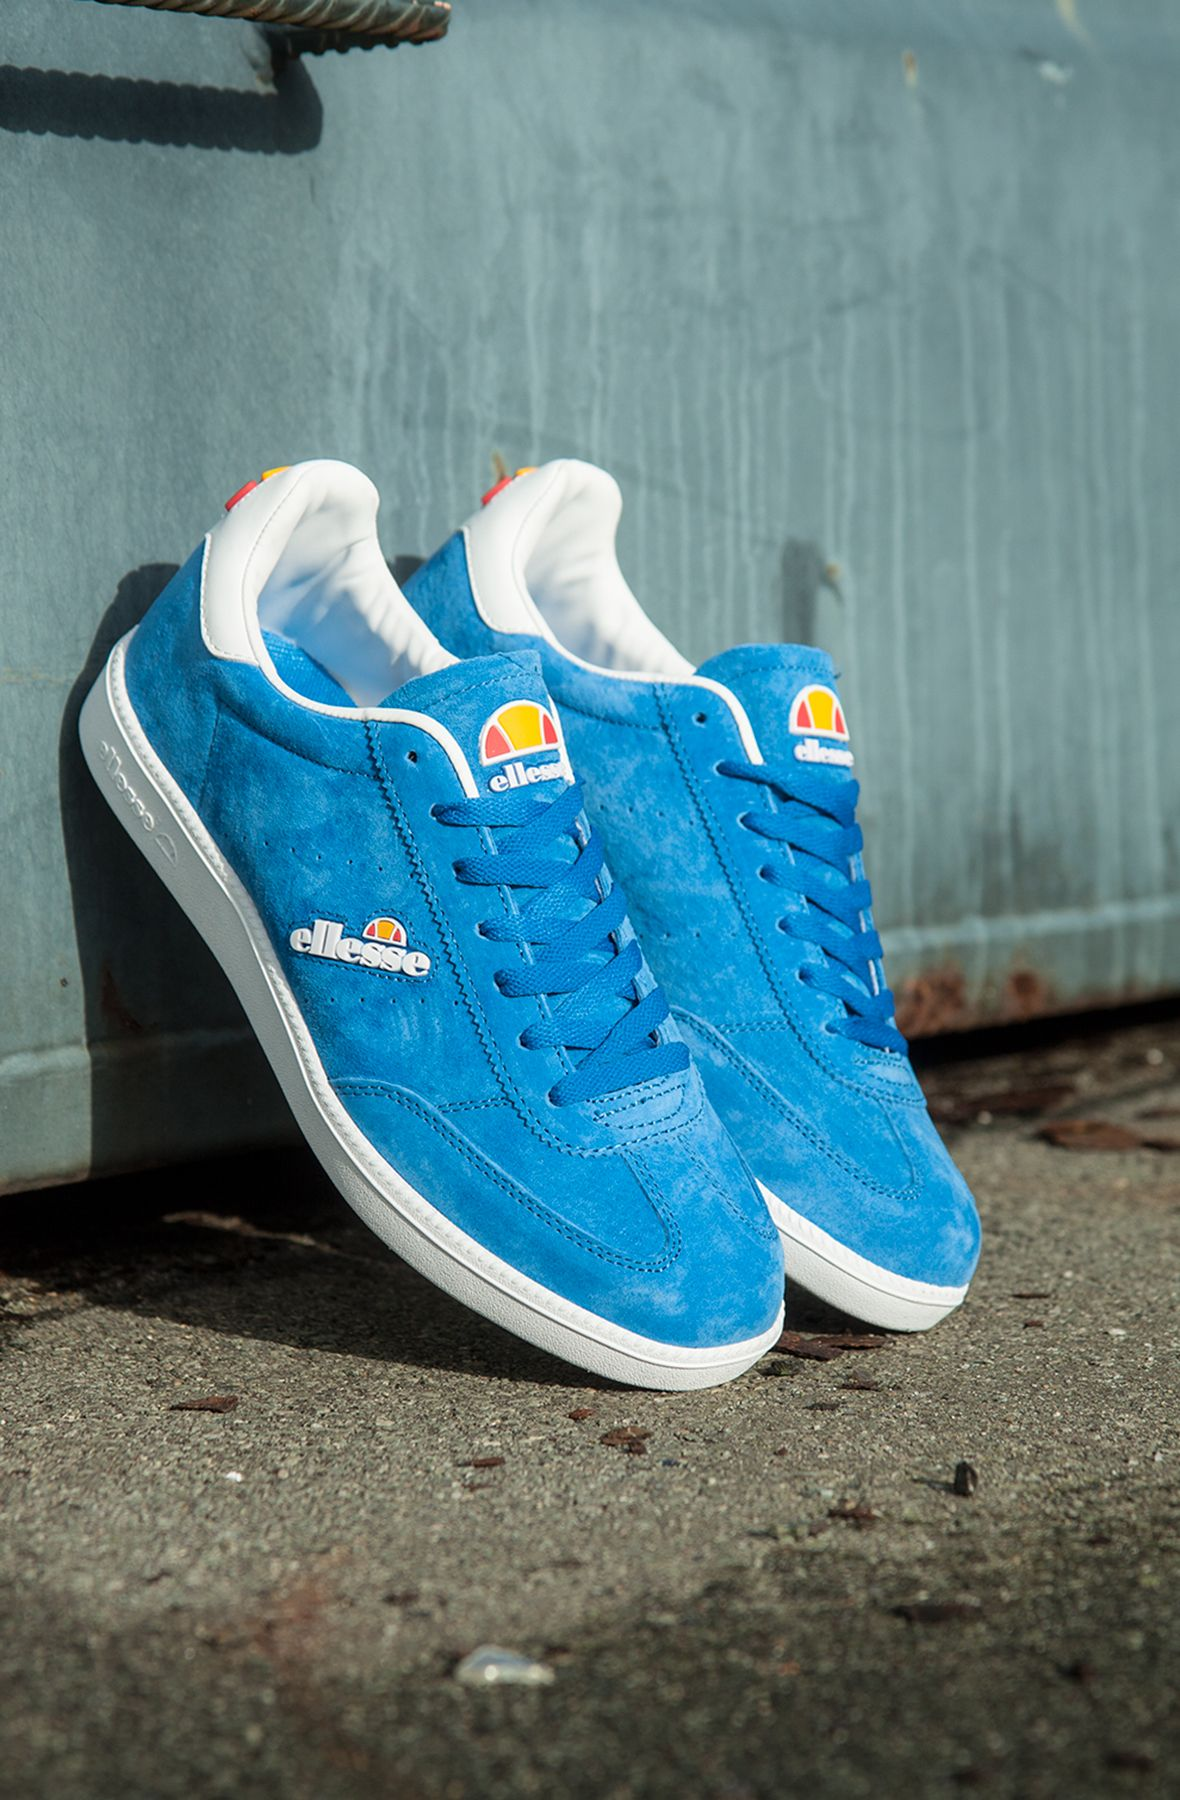 ellesse, ellesse clothing, trend, fashion, style, sneakers